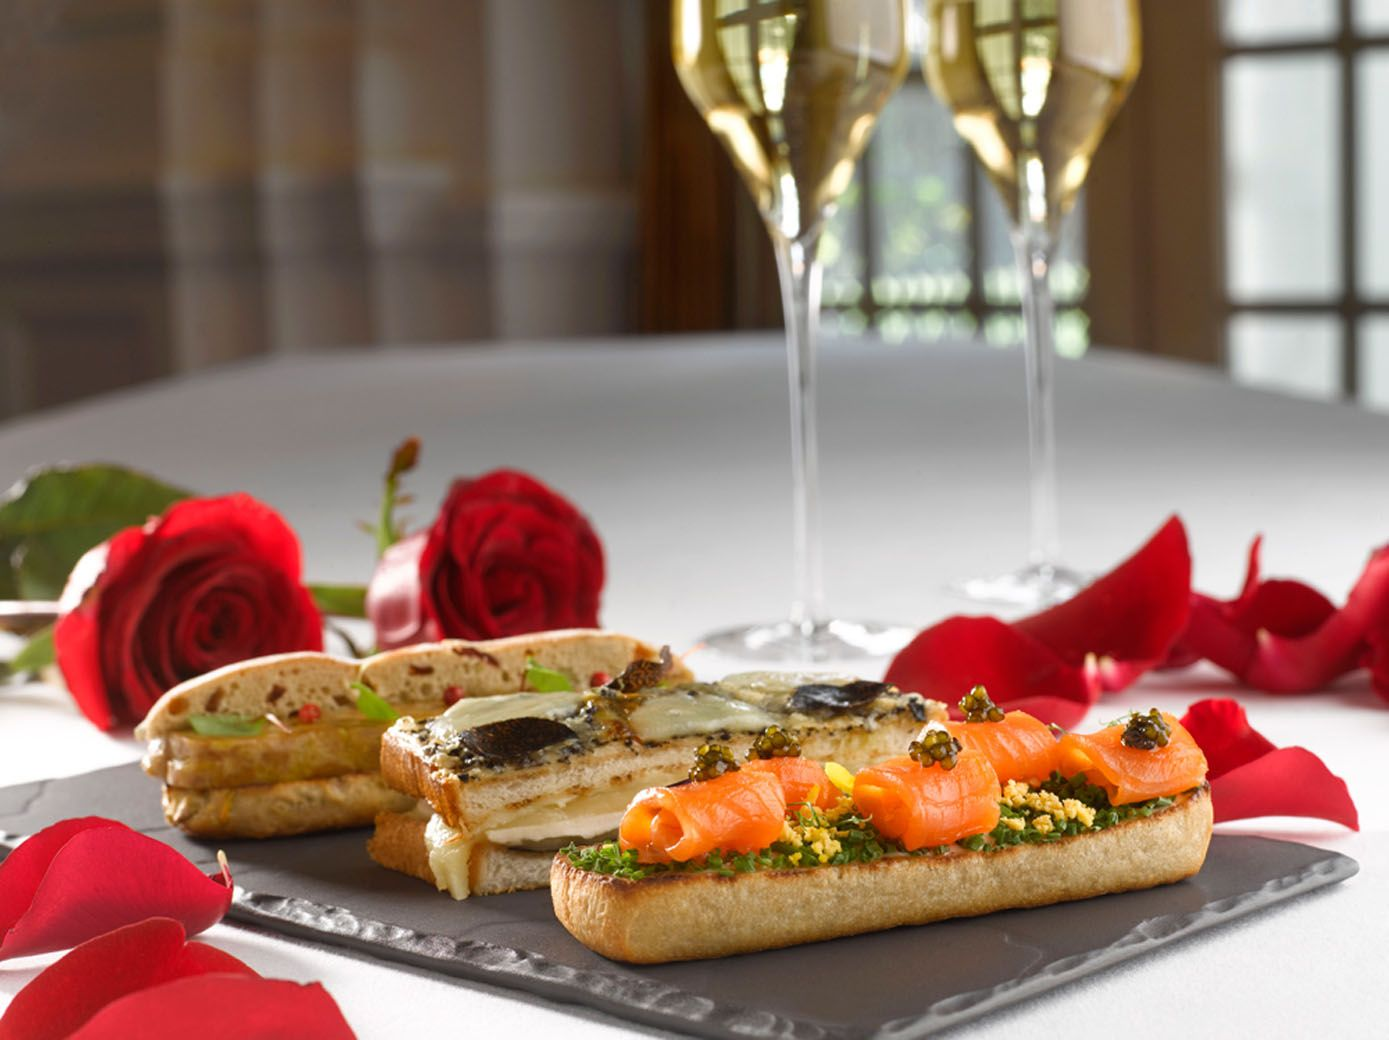 Surprise Your Loved Ones With a Romantic Valentine's Day Dinner at These Restaurants